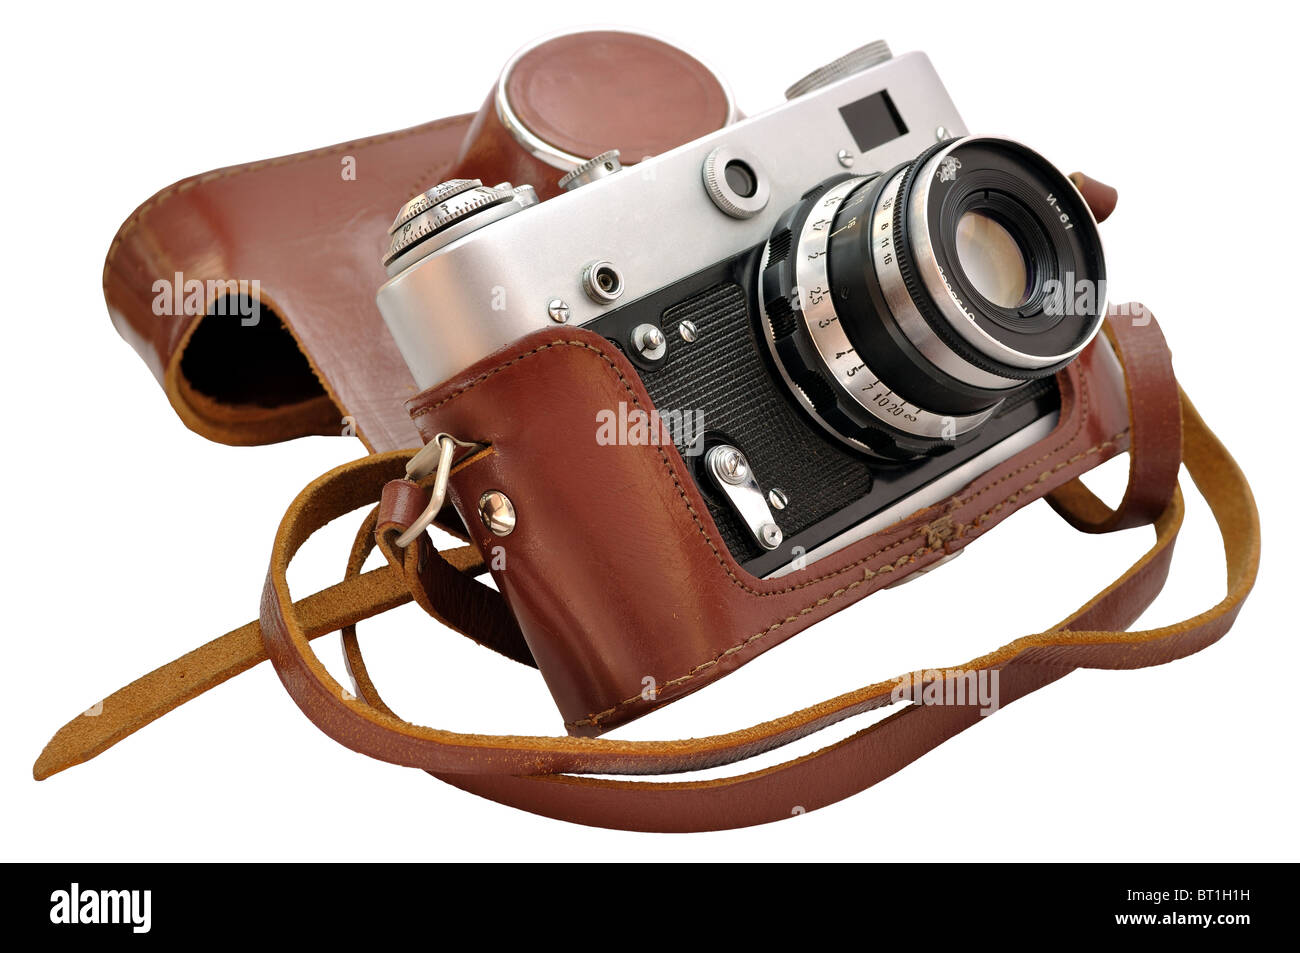 Isolated used vintage film photo-camera in leather case - Stock Image